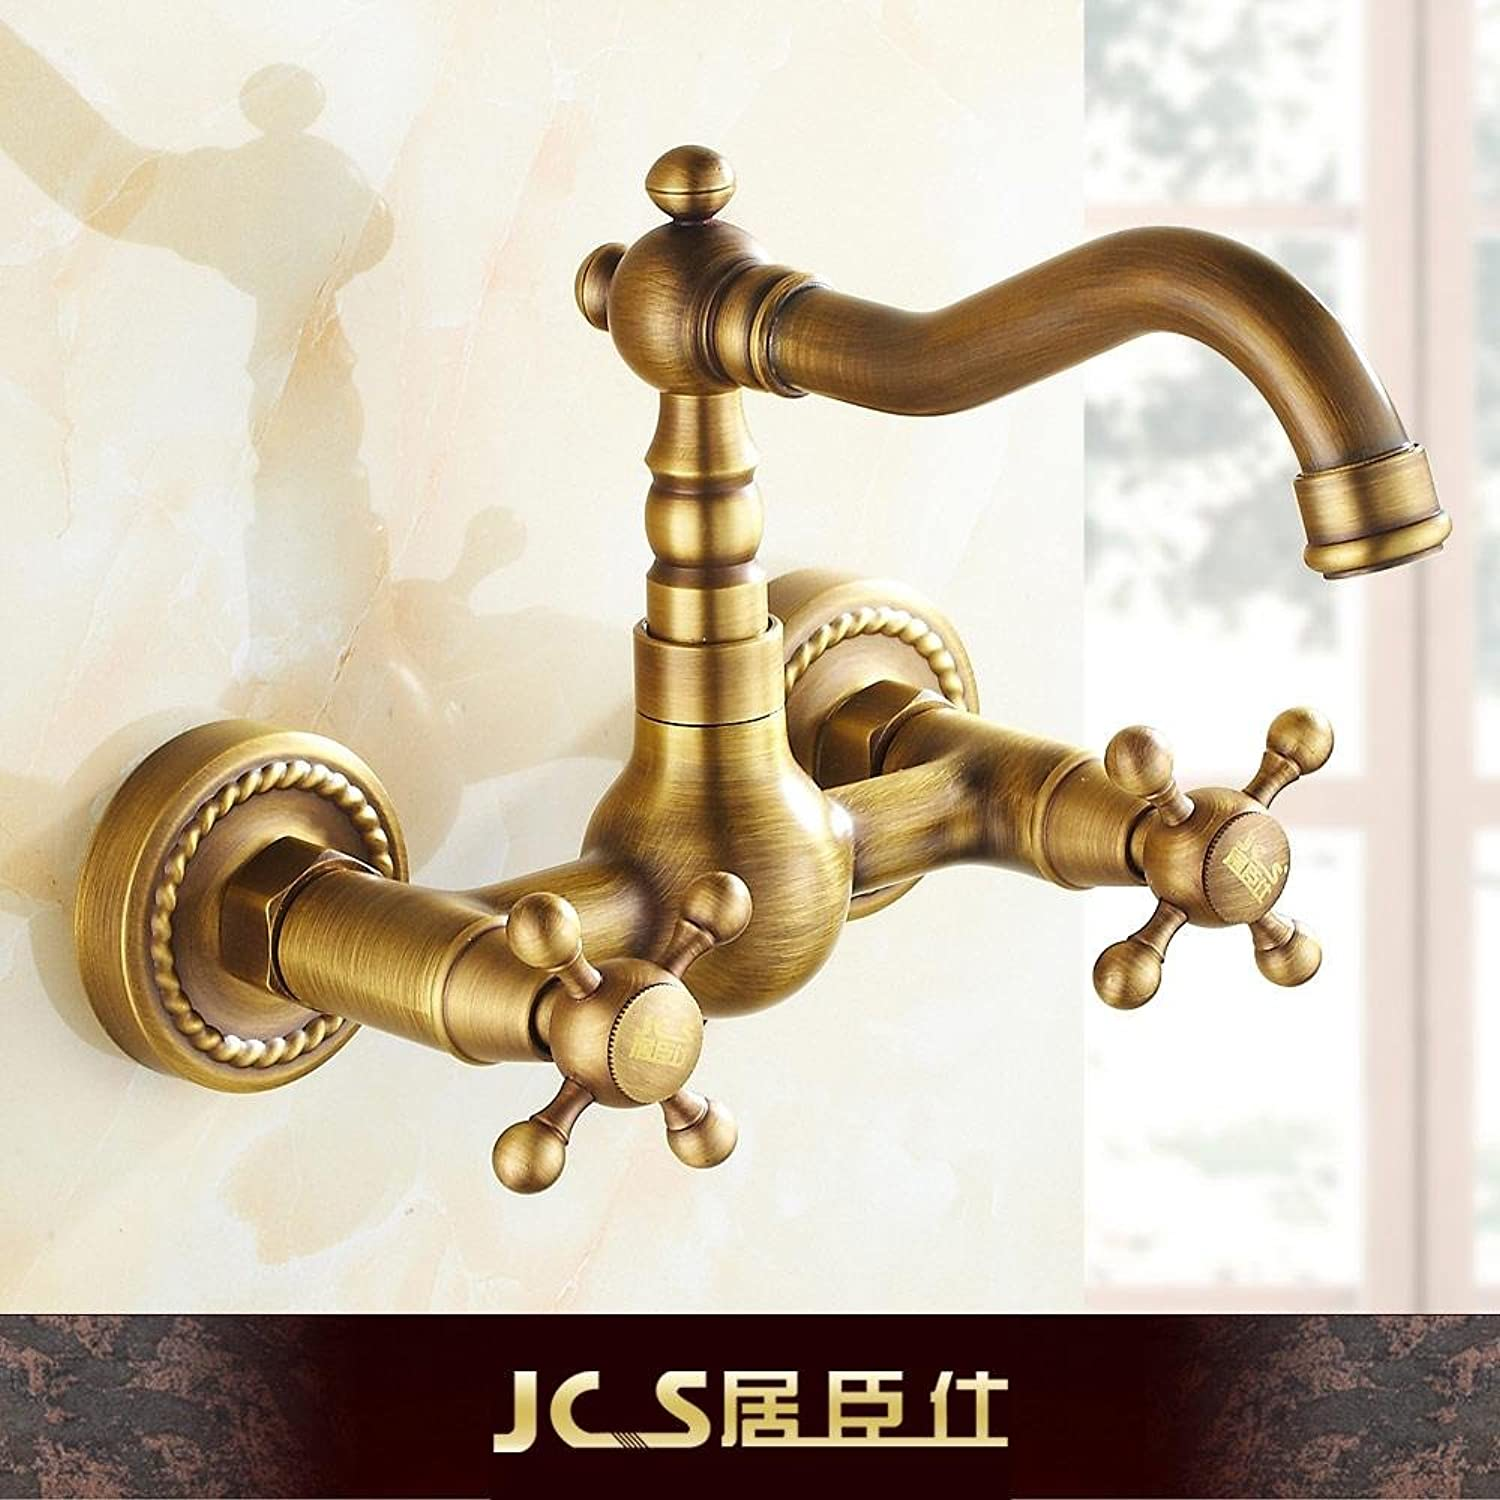 Lalaky Taps Faucet Kitchen Mixer Sink Waterfall Bathroom Mixer Basin Mixer Tap for Kitchen Bathroom and Washroom Antique Wall-Mounted Hot and Cold Copper Double-Walled Wall Can Be redated